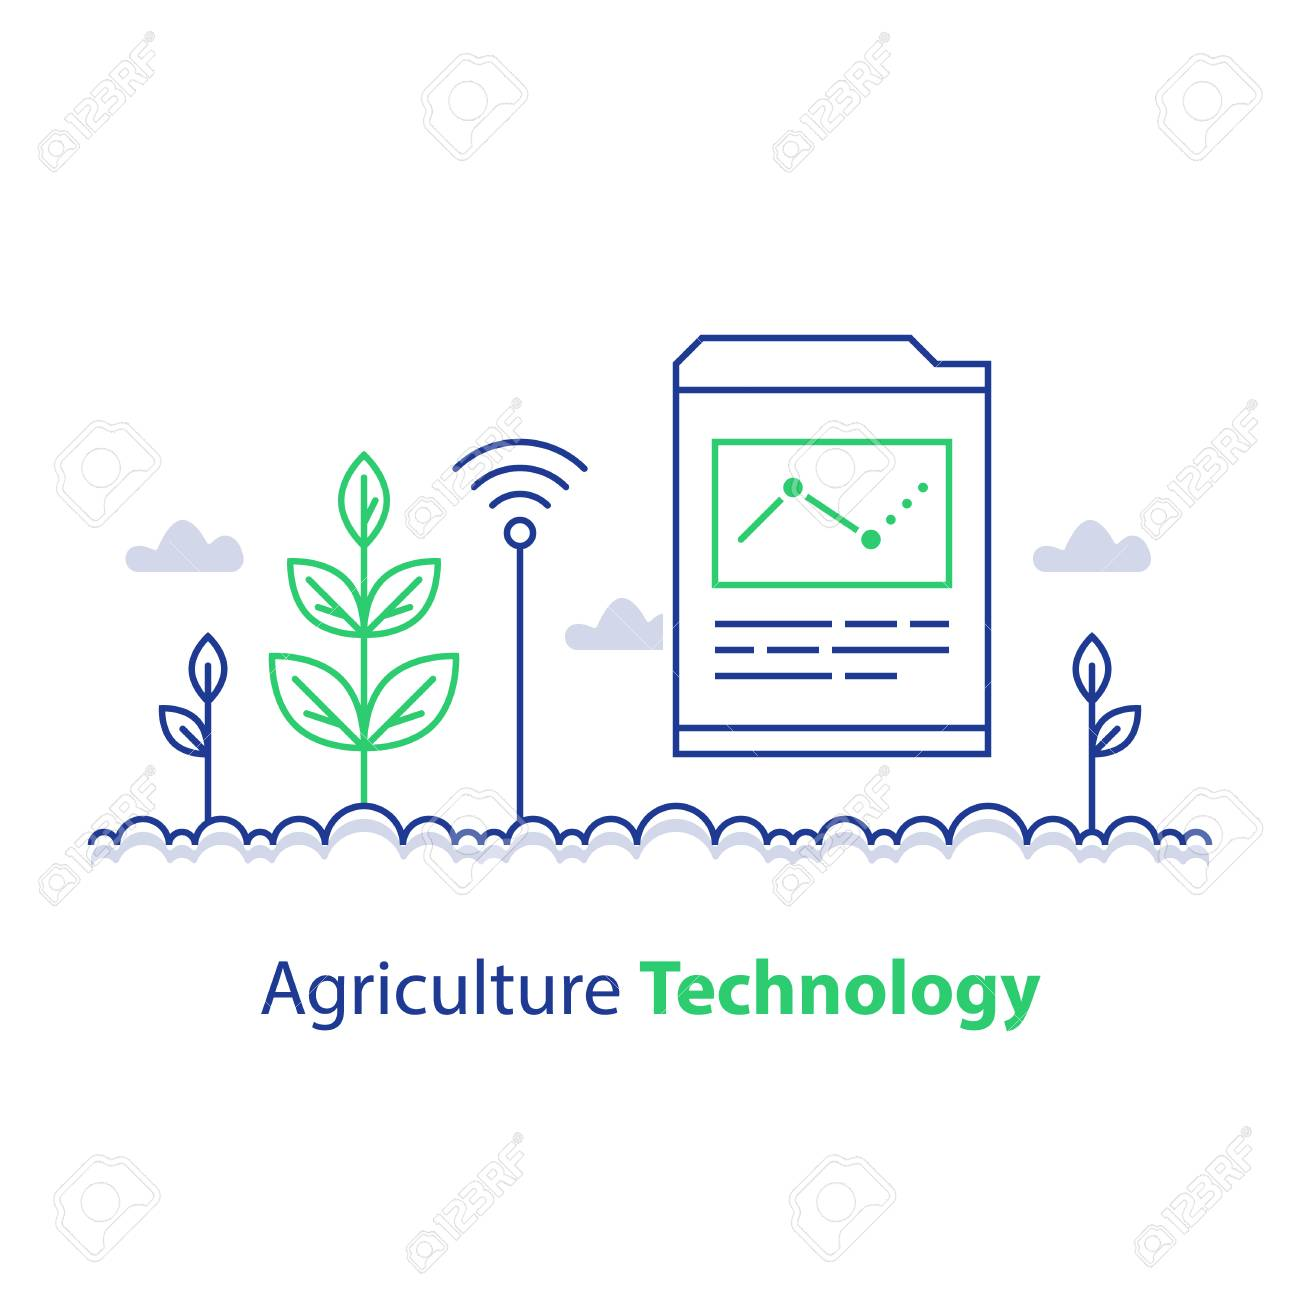 Agriculture technology, smart farming, plant stem and report